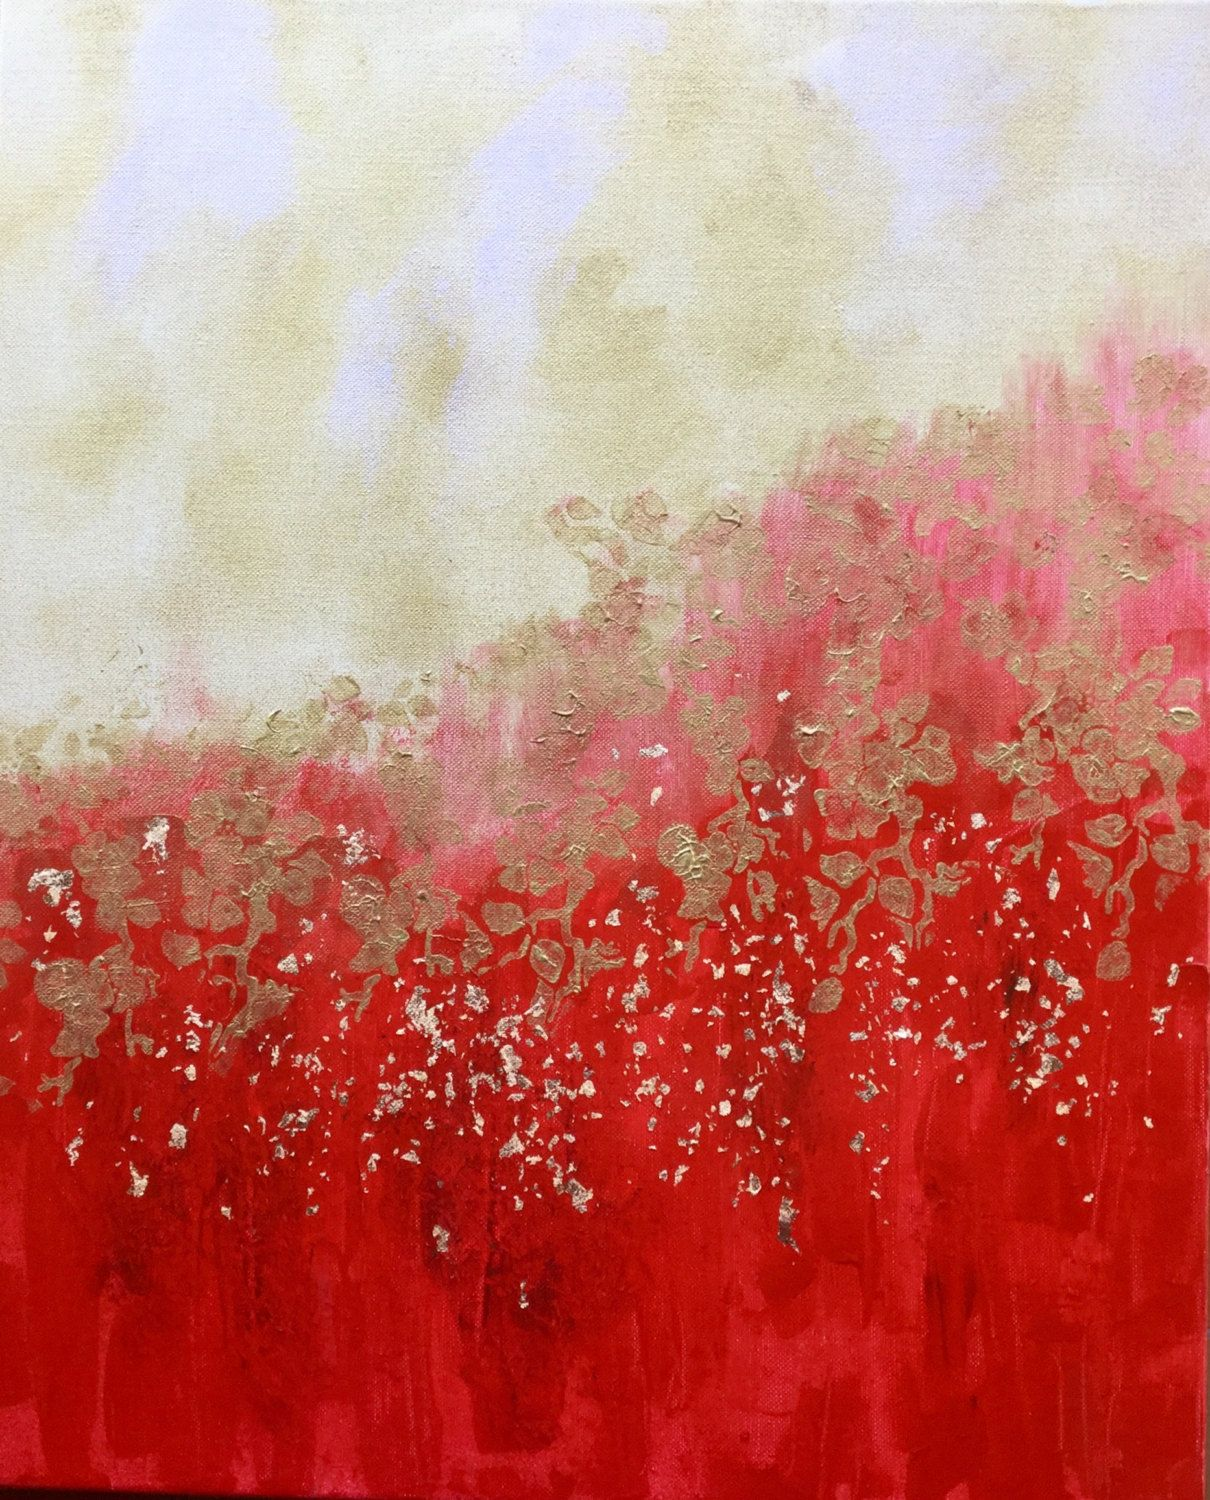 rain of gold/abstract painting red, gold/Peinture abstraite rouge/application doree/décoration ...